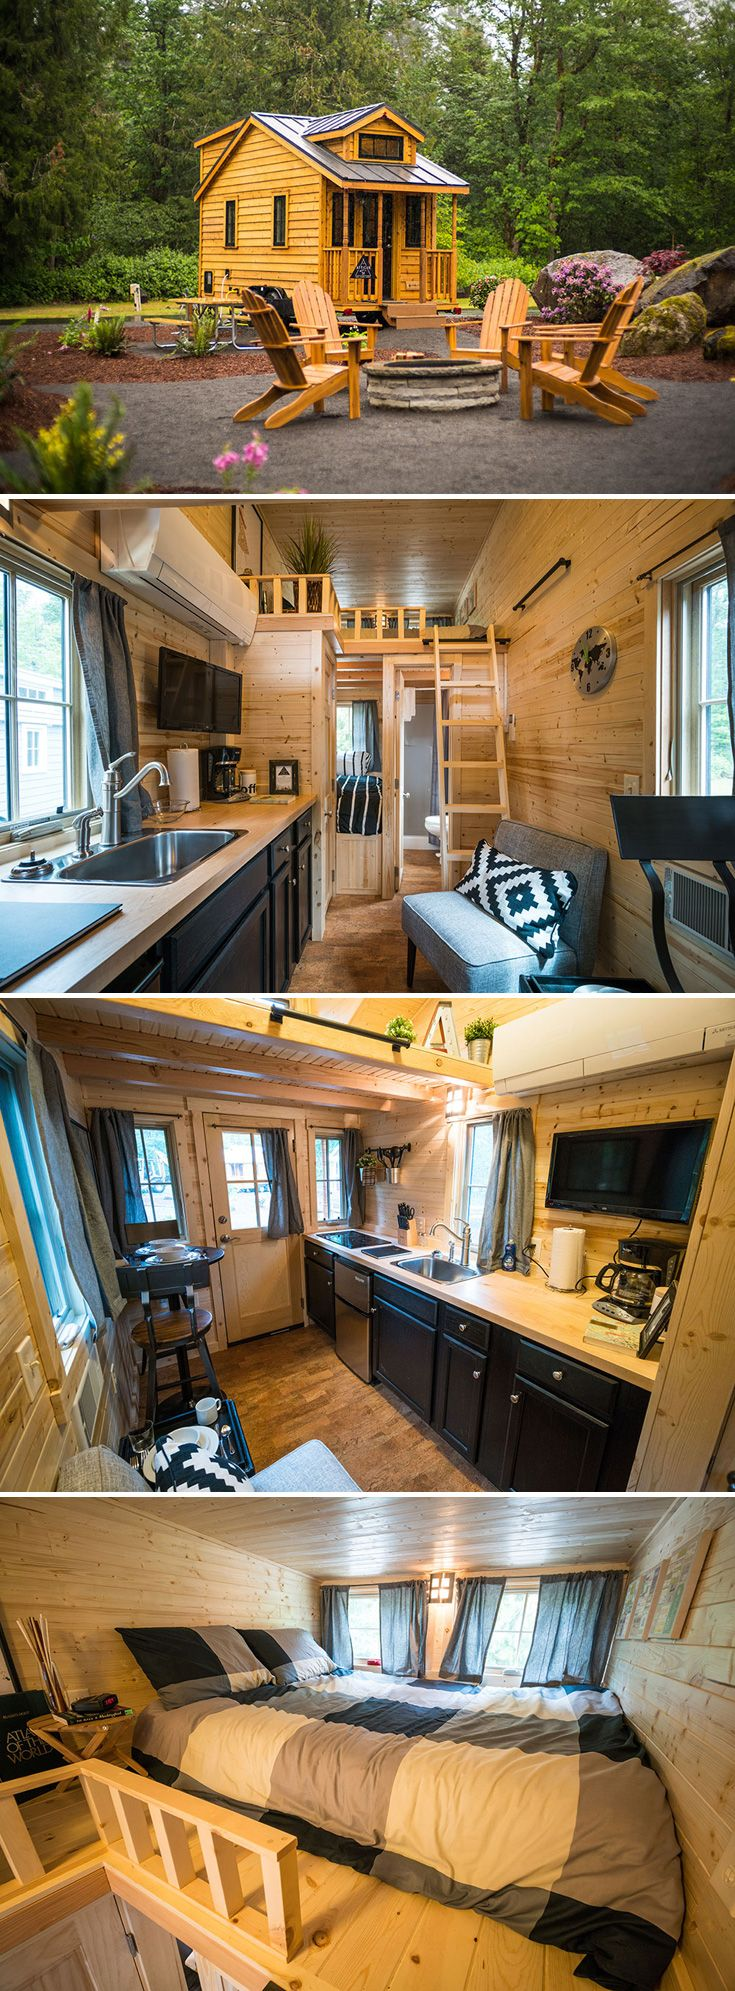 1039 best Tiny House! images on Pinterest | Tiny house cabin, My ...